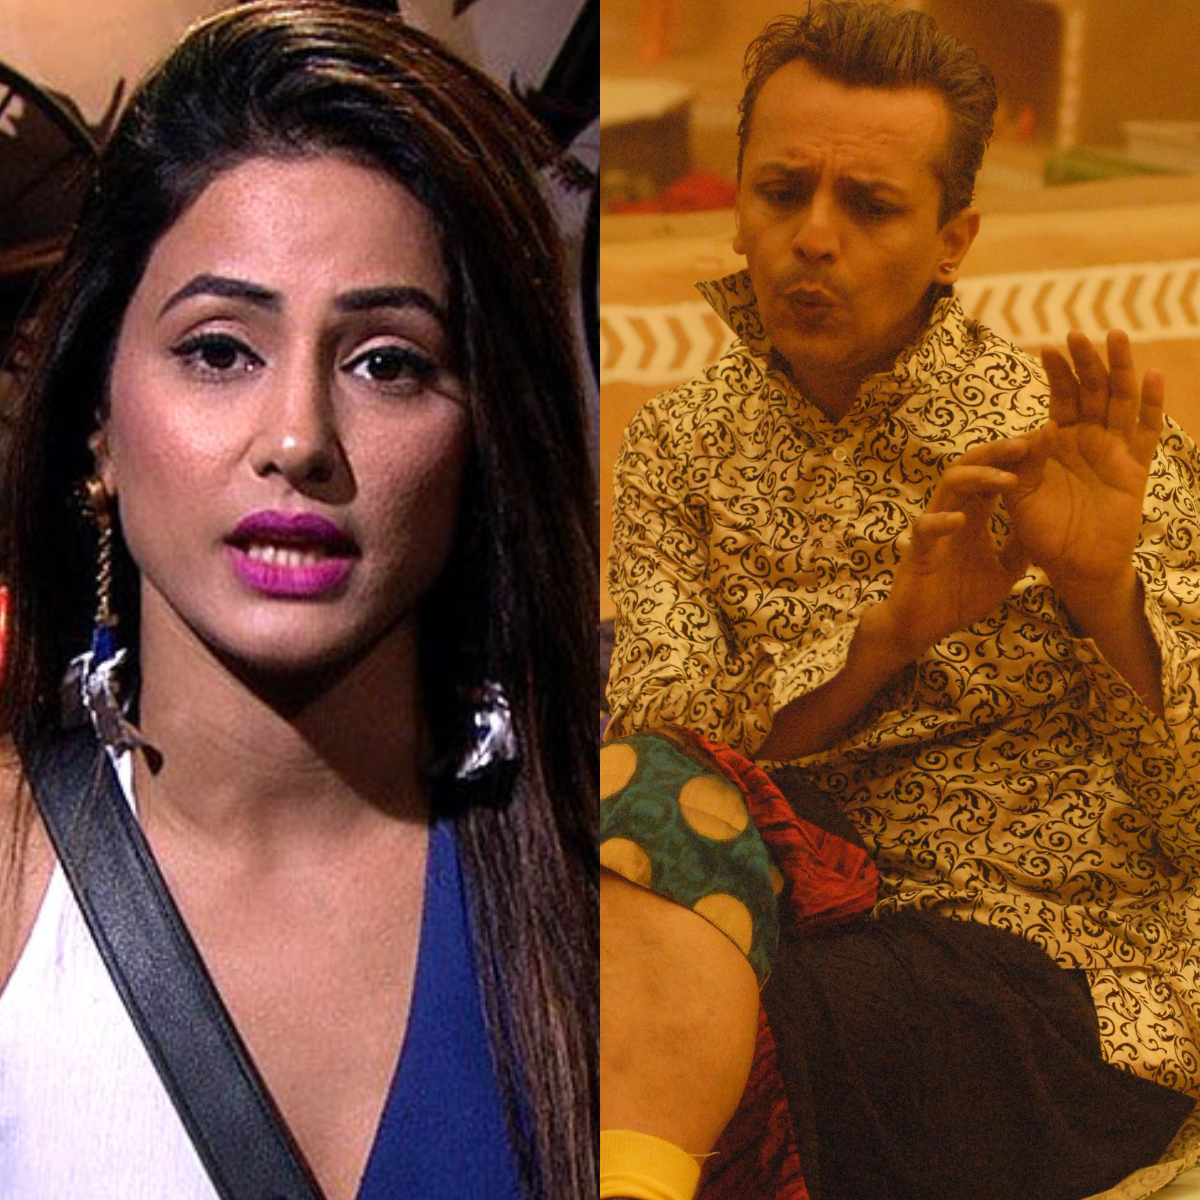 Hina Khan to Imam Siddique: Bigg Boss participants who made controversial statements from inside the series